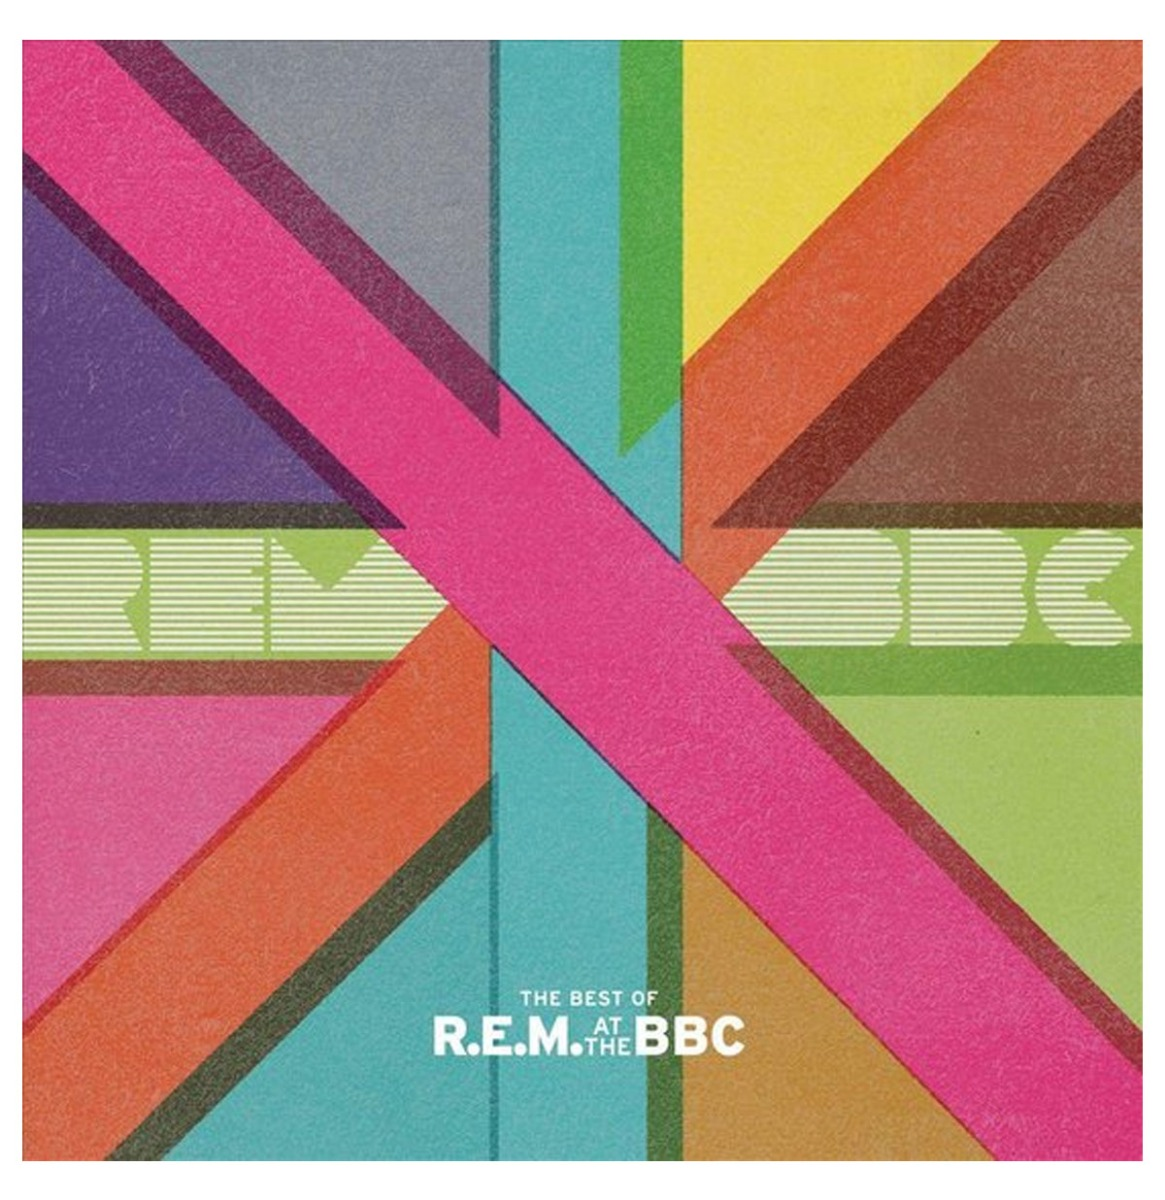 The Best Of R.E.M. At The BBC 2-LP